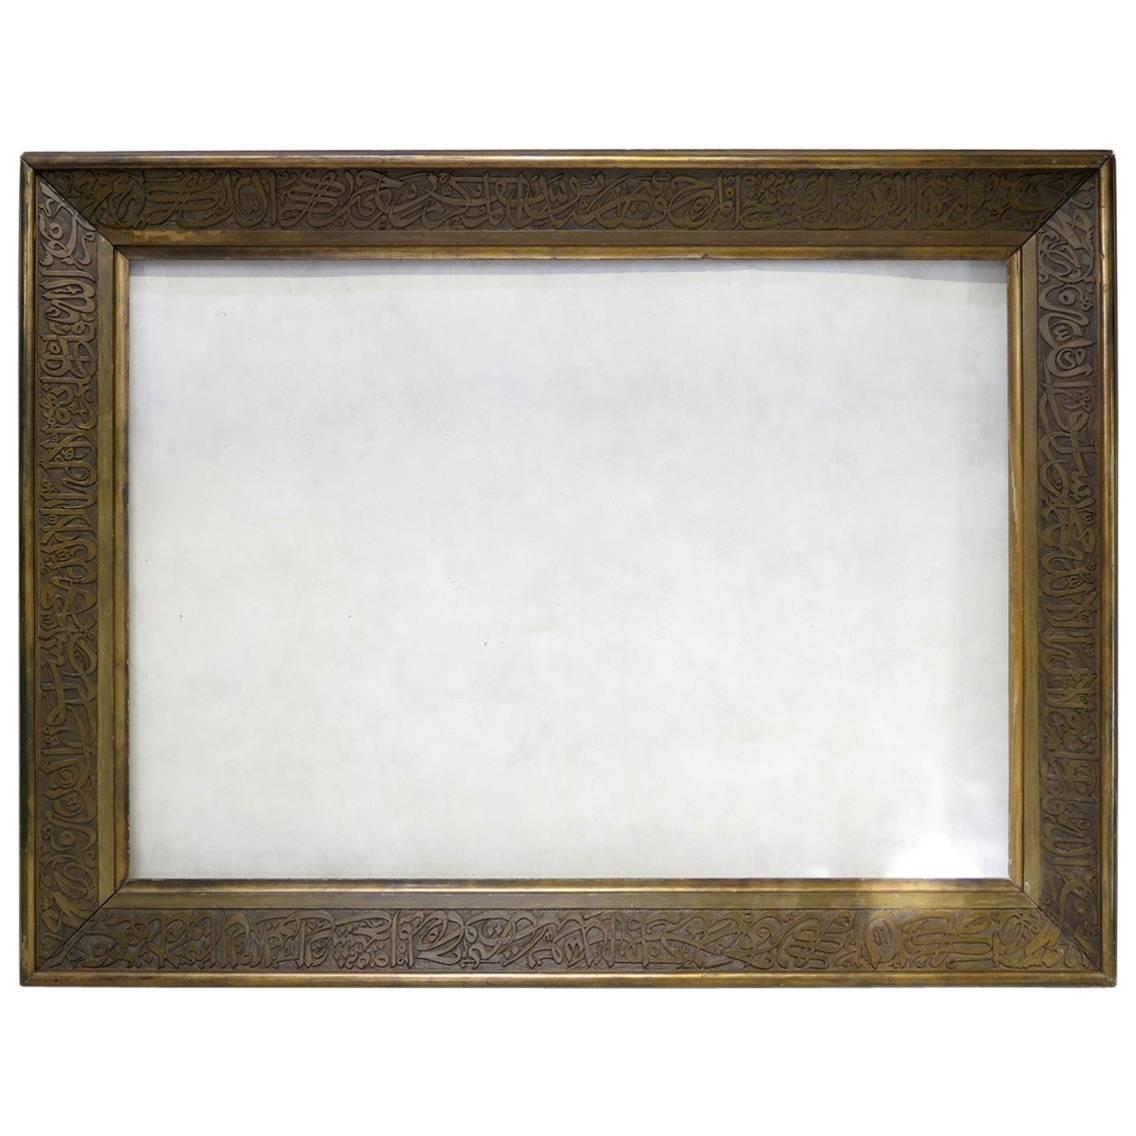 Monumental Carved Oriental Giltwood Frame, Early 1900s